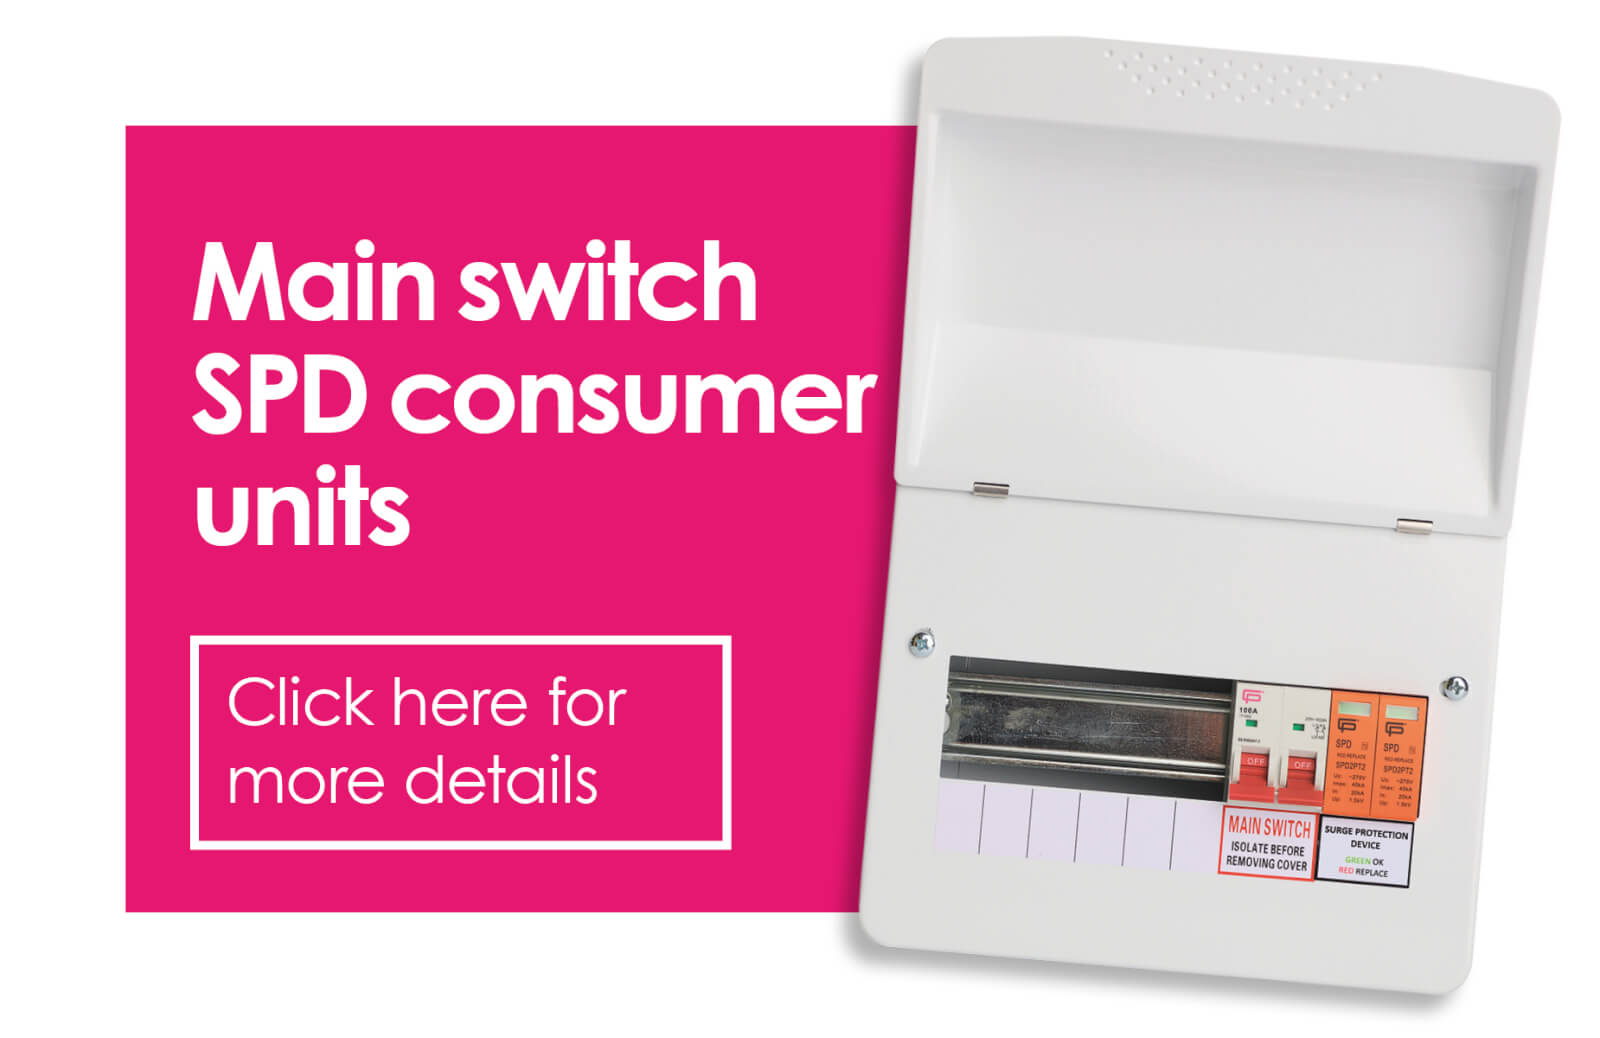 FUSEBOX Main Switch SPD Consumer Units